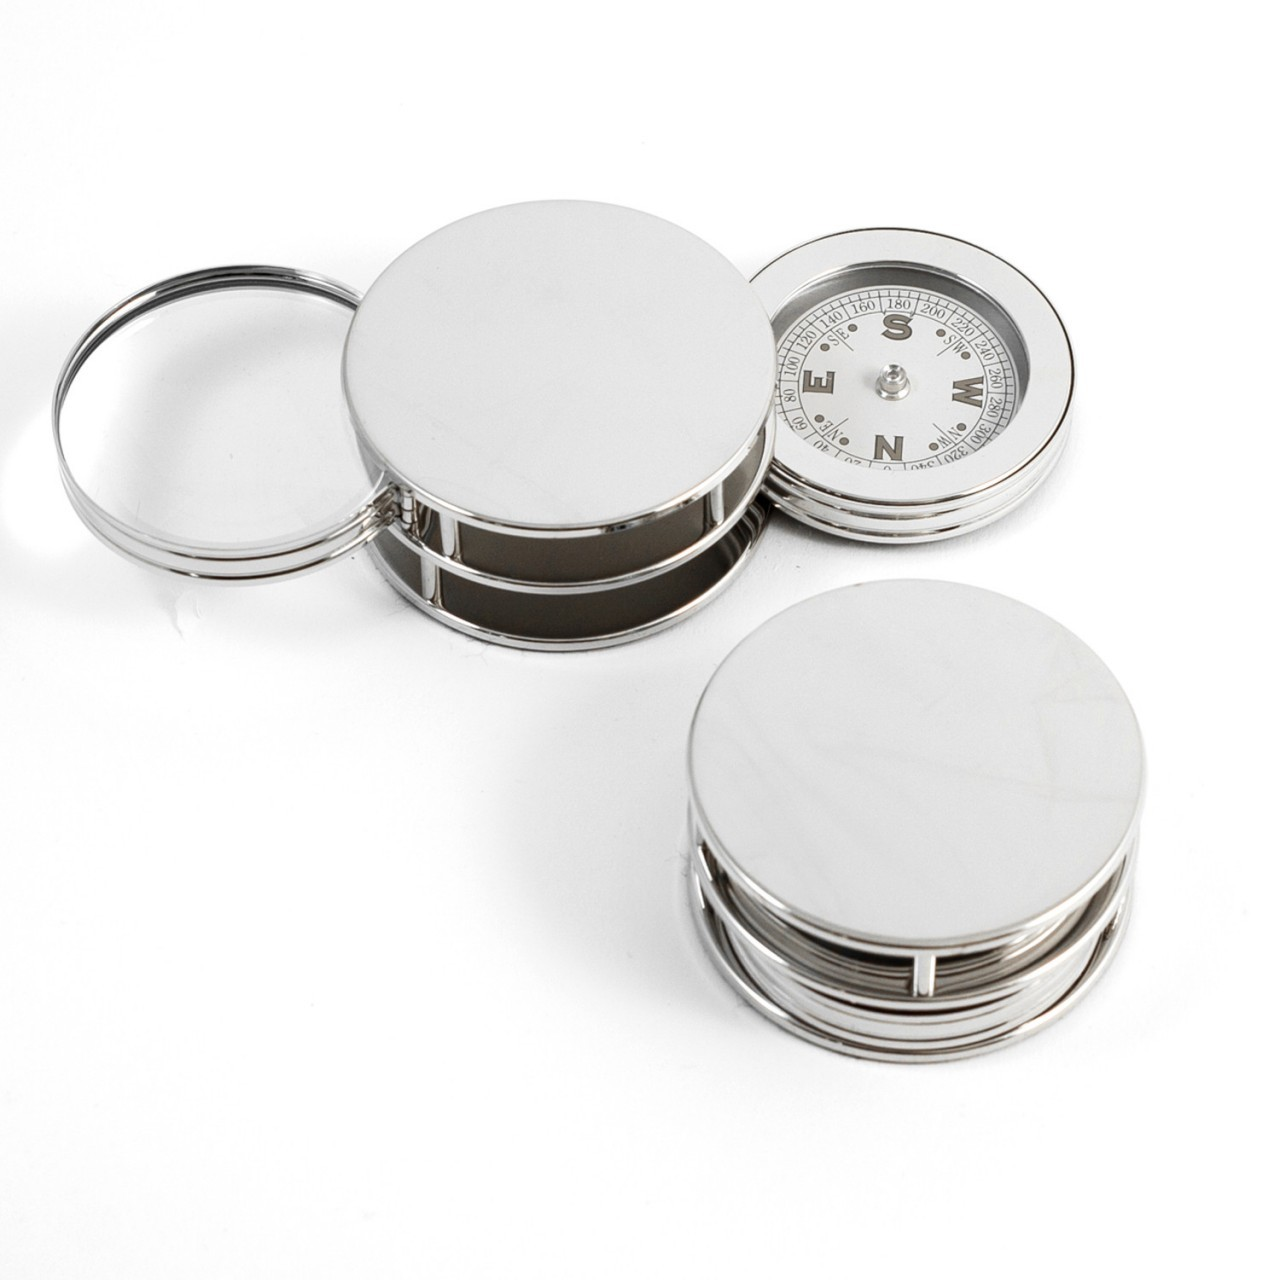 Chrome Plated Paper Weight with Compass with Magnifier